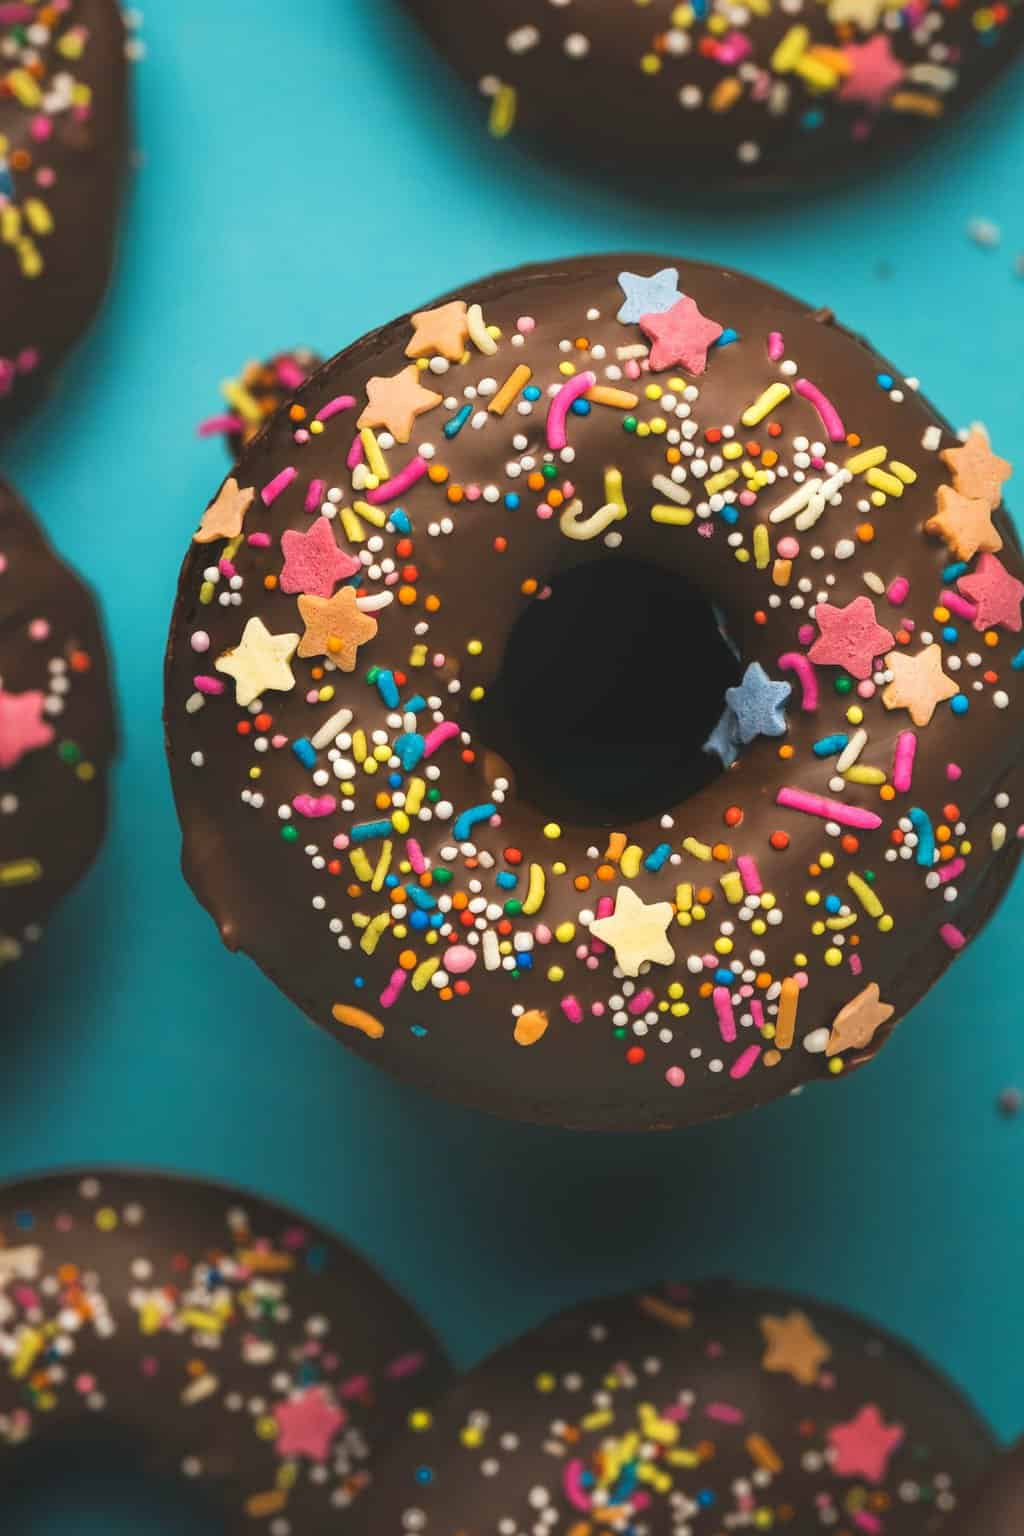 Vegan chocolate donuts topped with sprinkles.